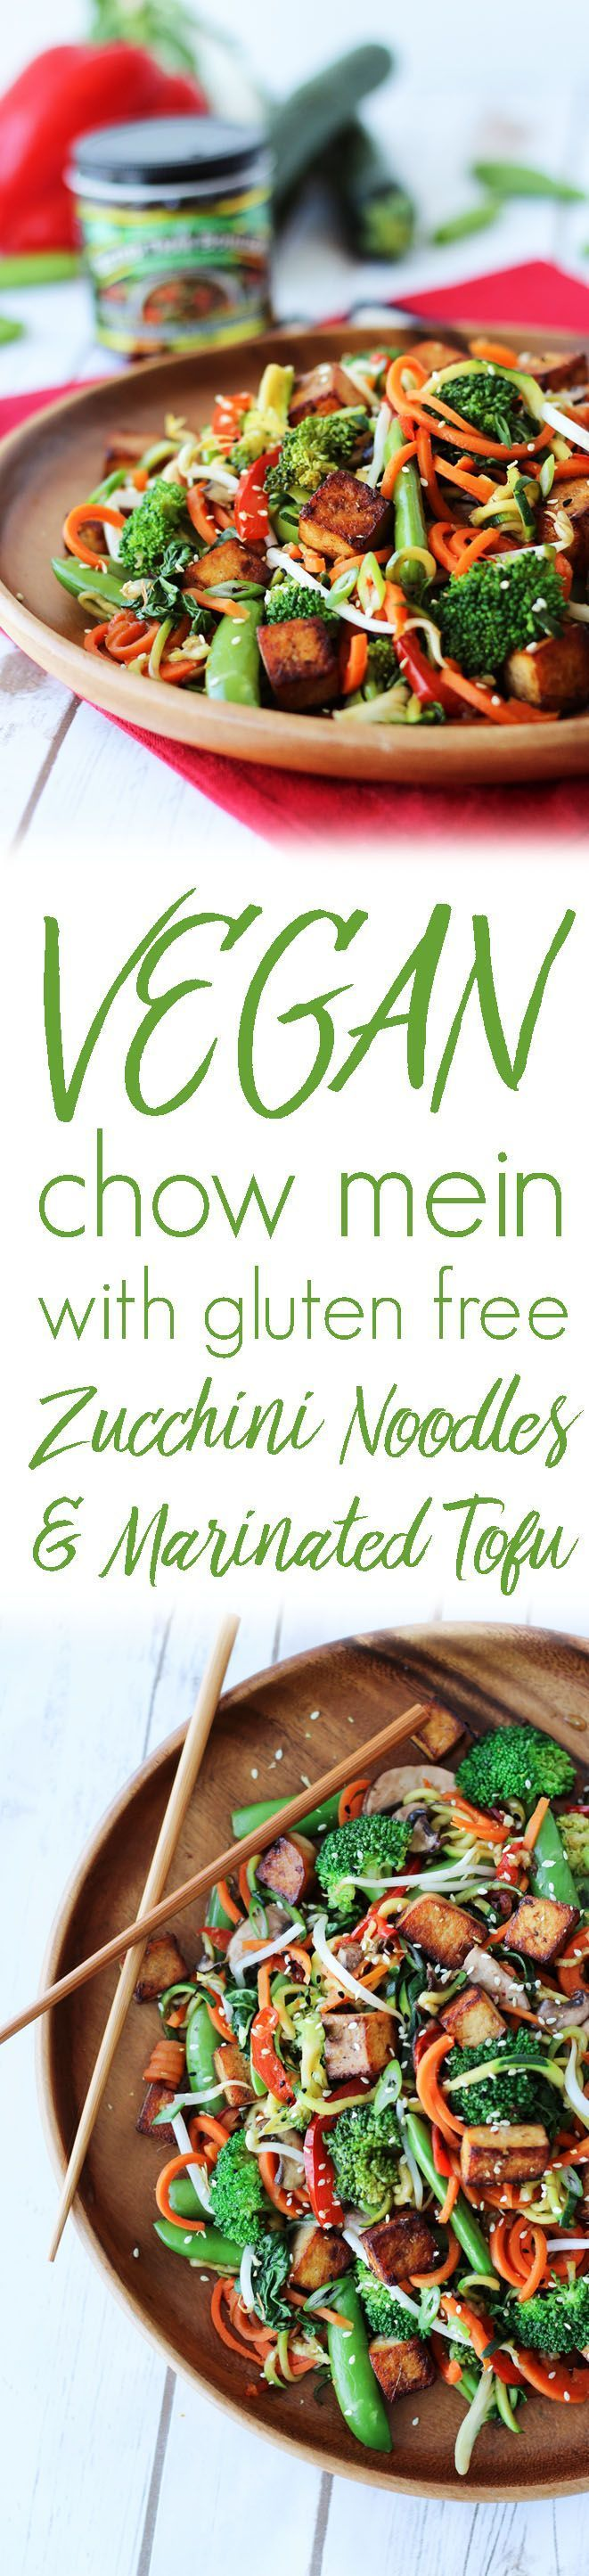 This Vegan Chow Mein features delicious marinated tofu and gluten free low carb zucchini noodles. Its the perfect way to get your Chinese take-out fix without the calories, fat or carbs. This calls for a girls night in!